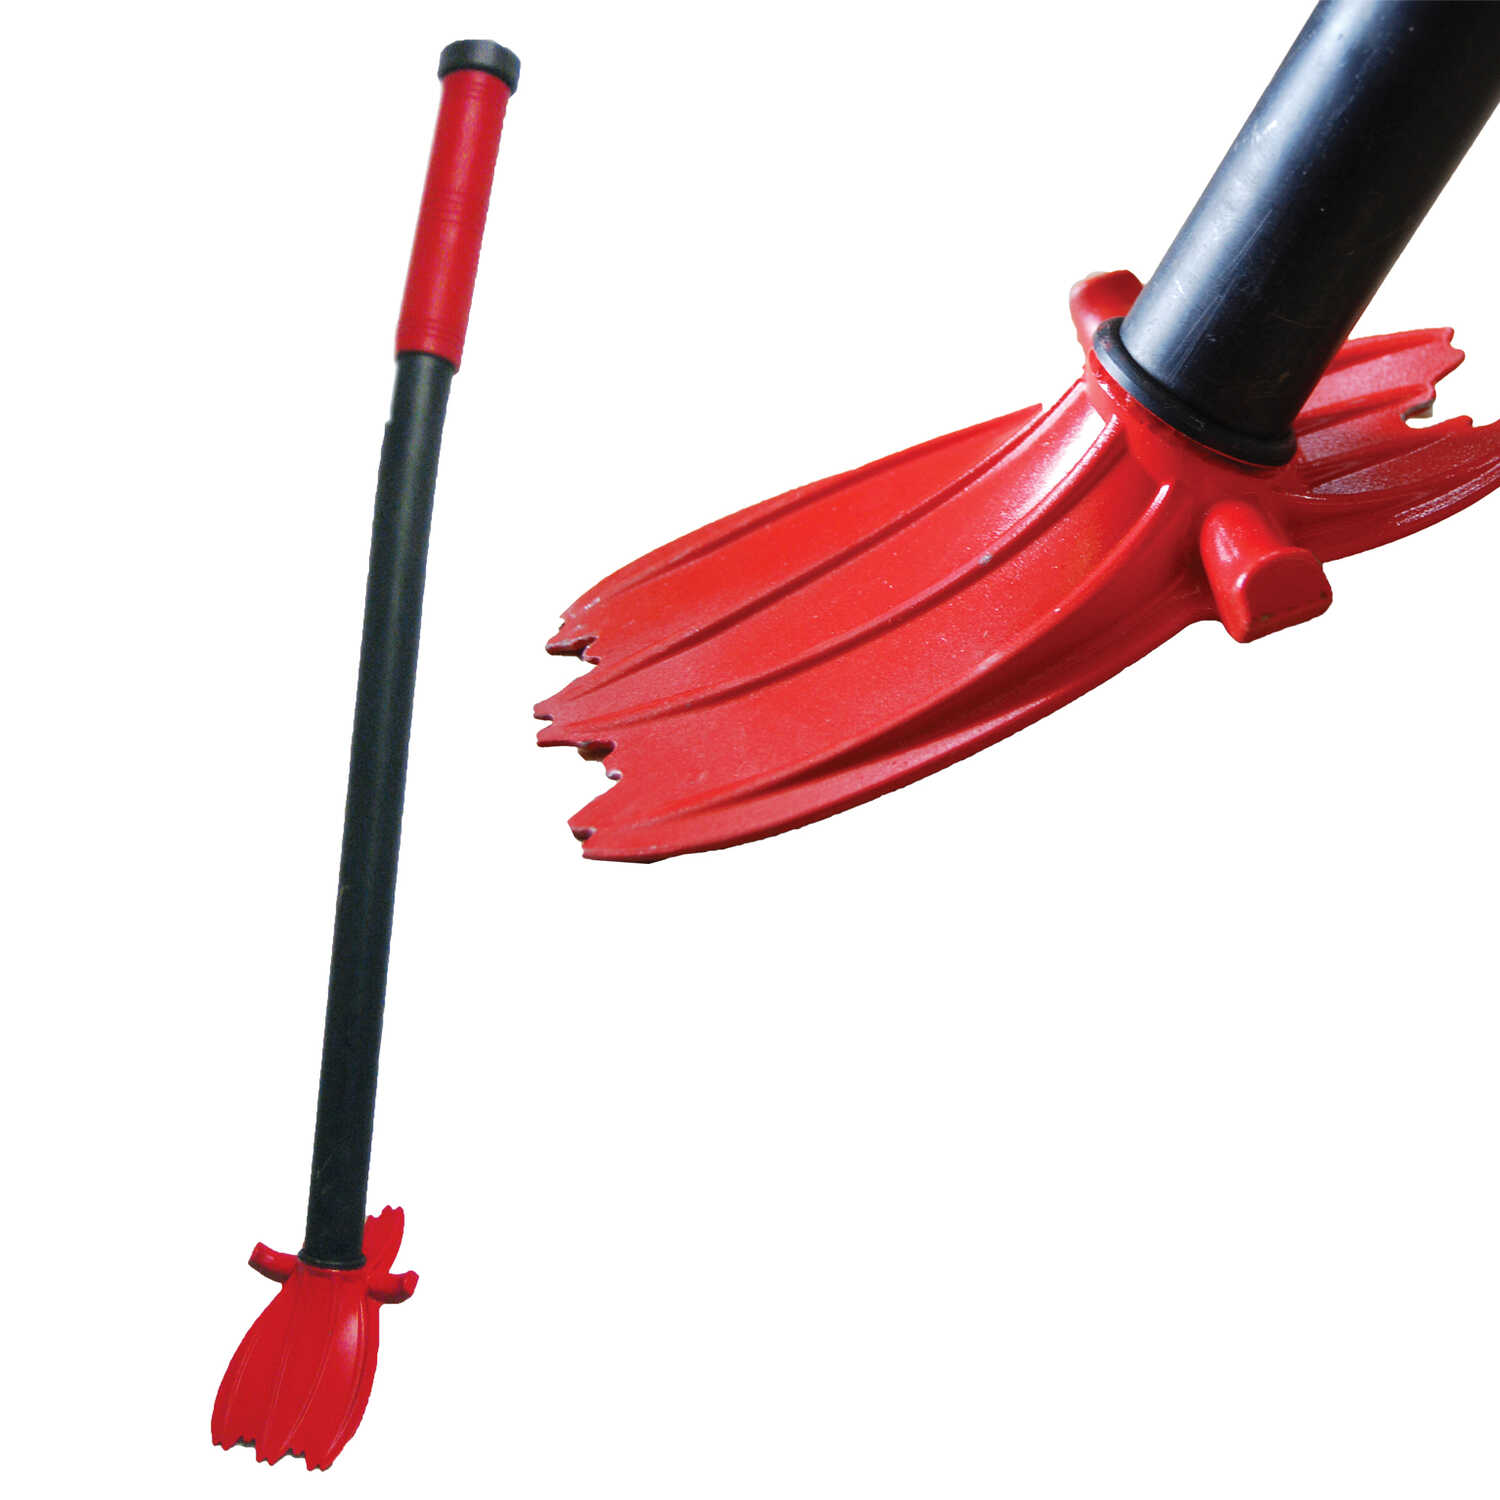 Roofers World  Little Red Ripper  Carbon Steel  32 in. L x 3 in. W Shingle Remover